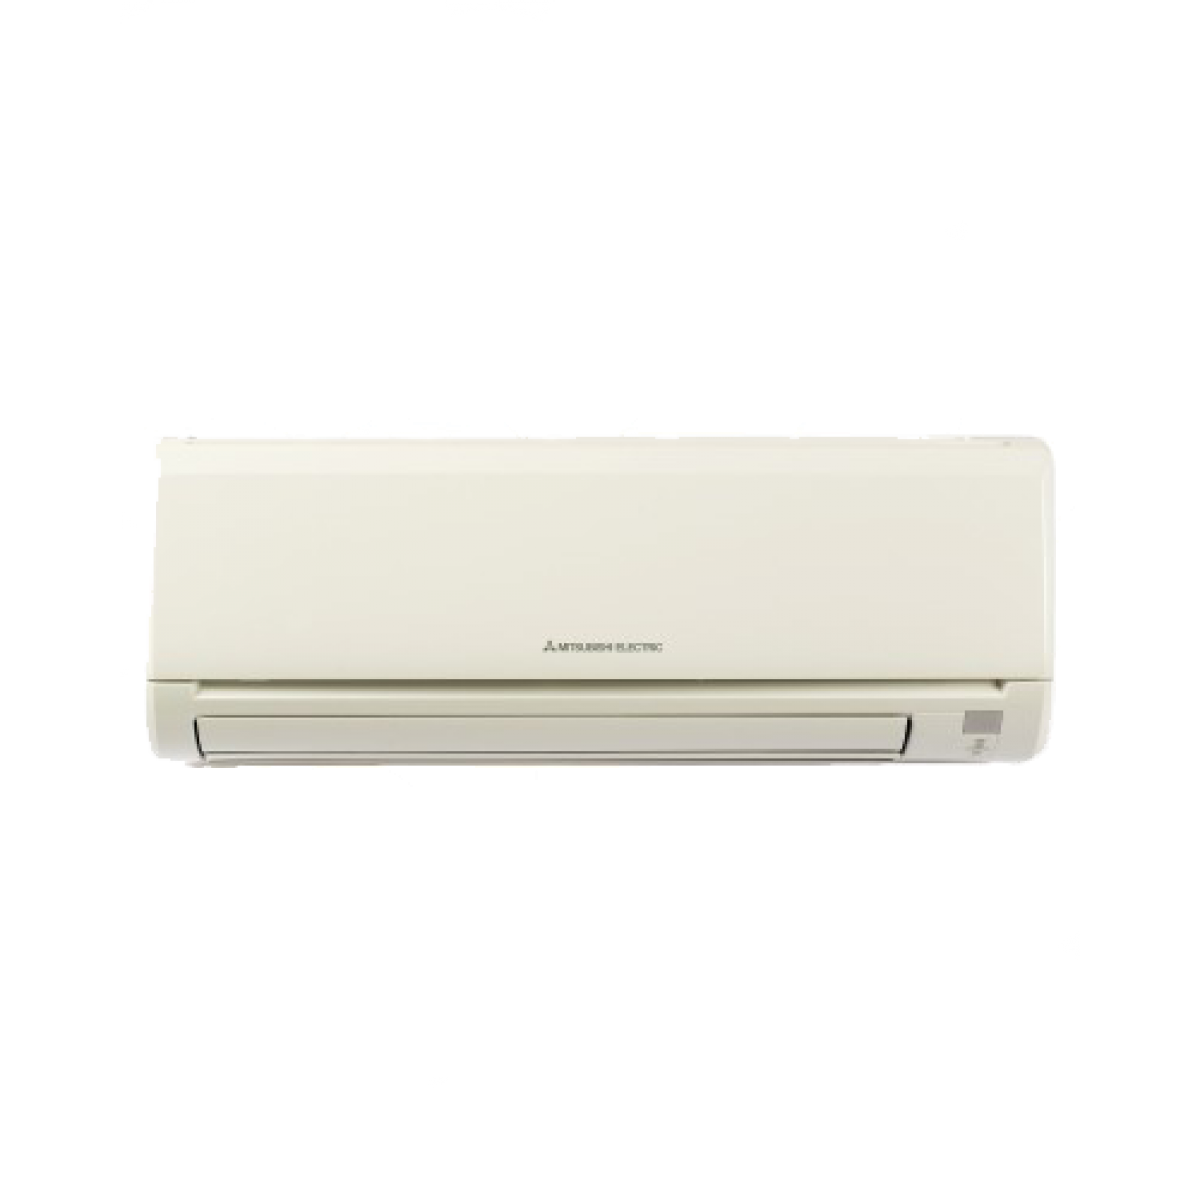 #68634E Mitsubishi 9K BTU 24.6 SEER Cooling Only System In  Brand New 5341 Mitsubishi Ductless Heating And Cooling Systems images with 1200x1200 px on helpvideos.info - Air Conditioners, Air Coolers and more